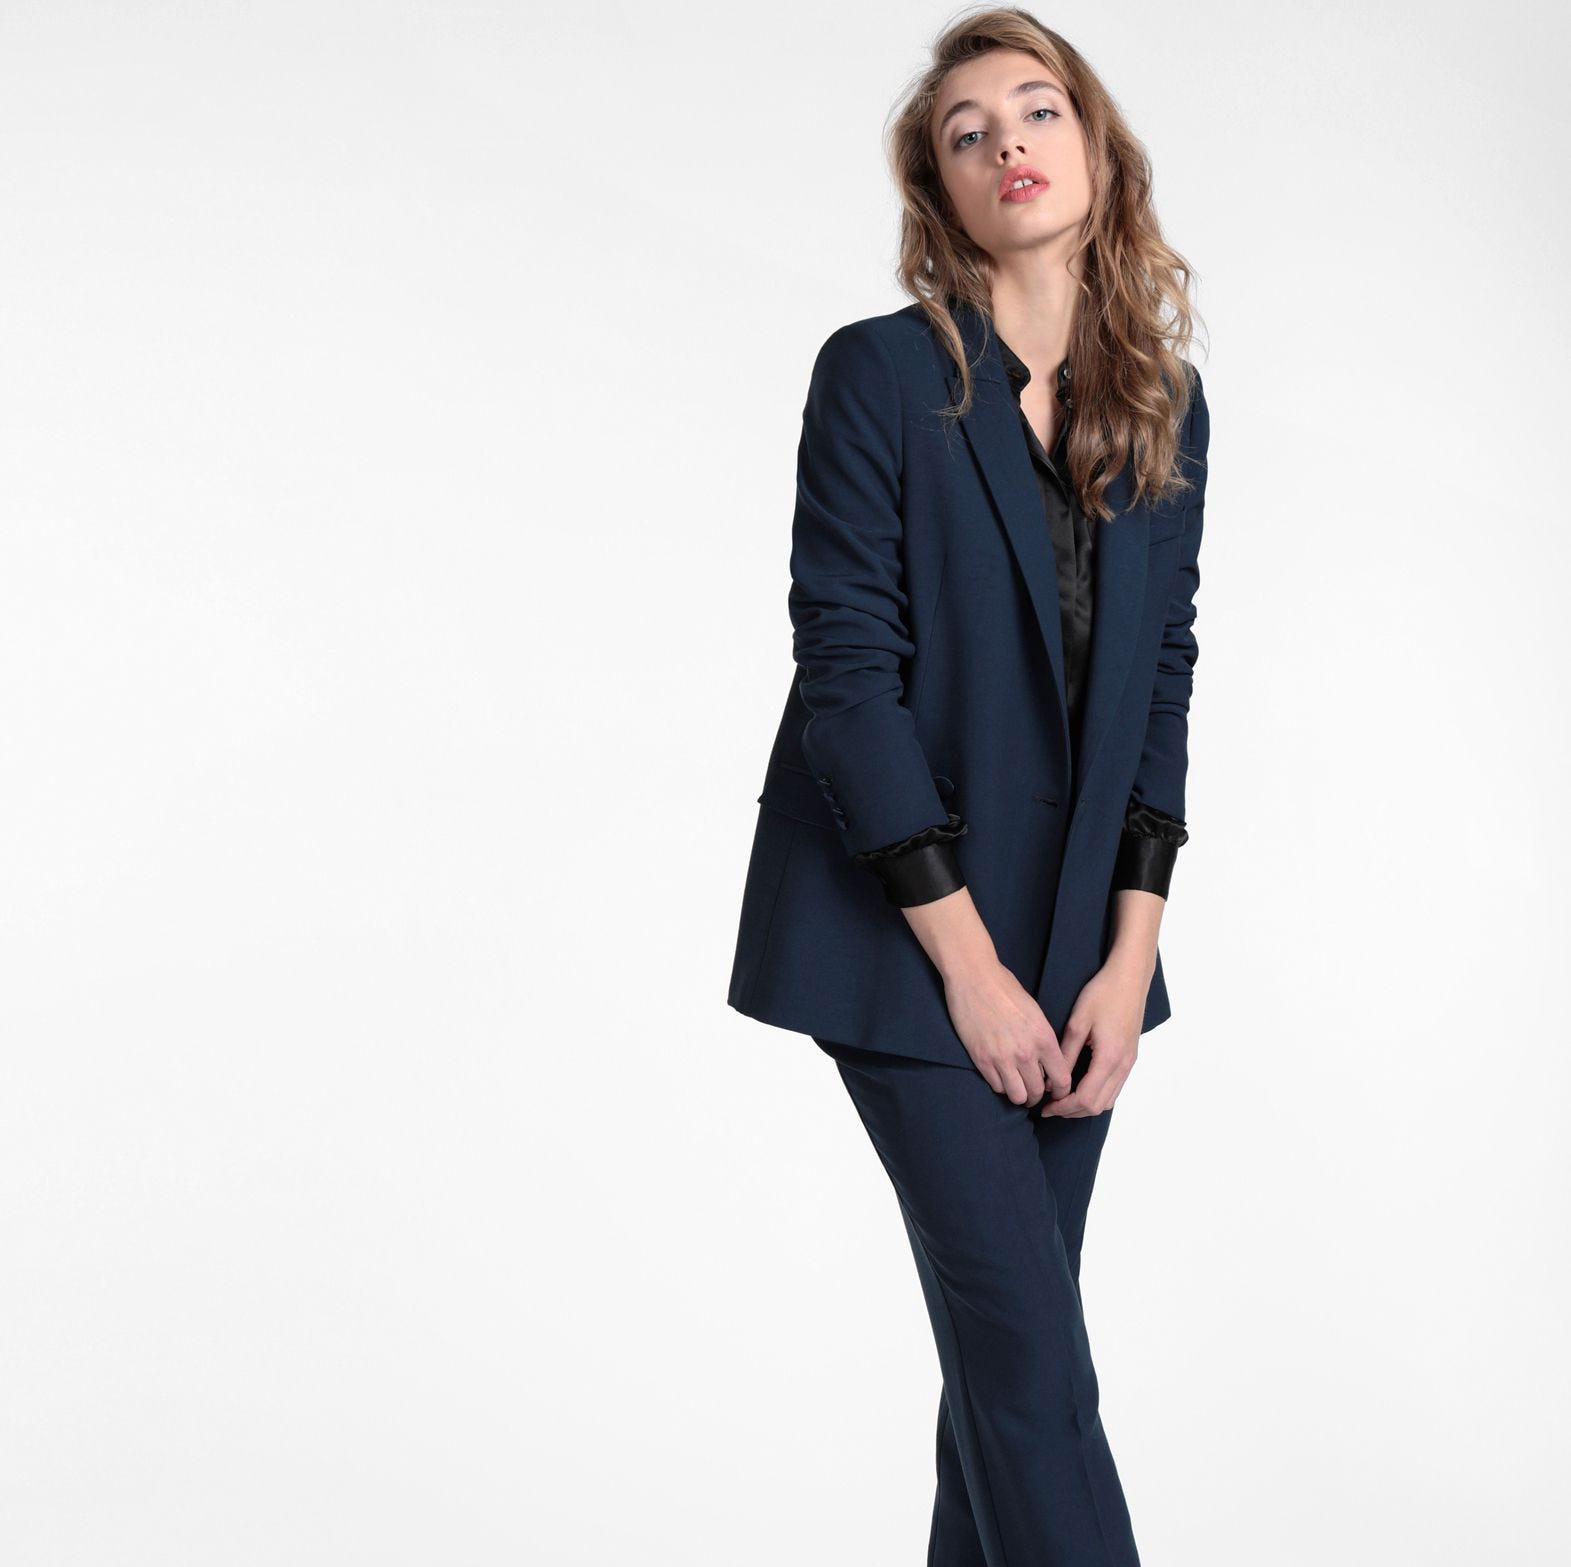 3fb3a45e097 What To Wear To Work By Dress Code - Business Casual